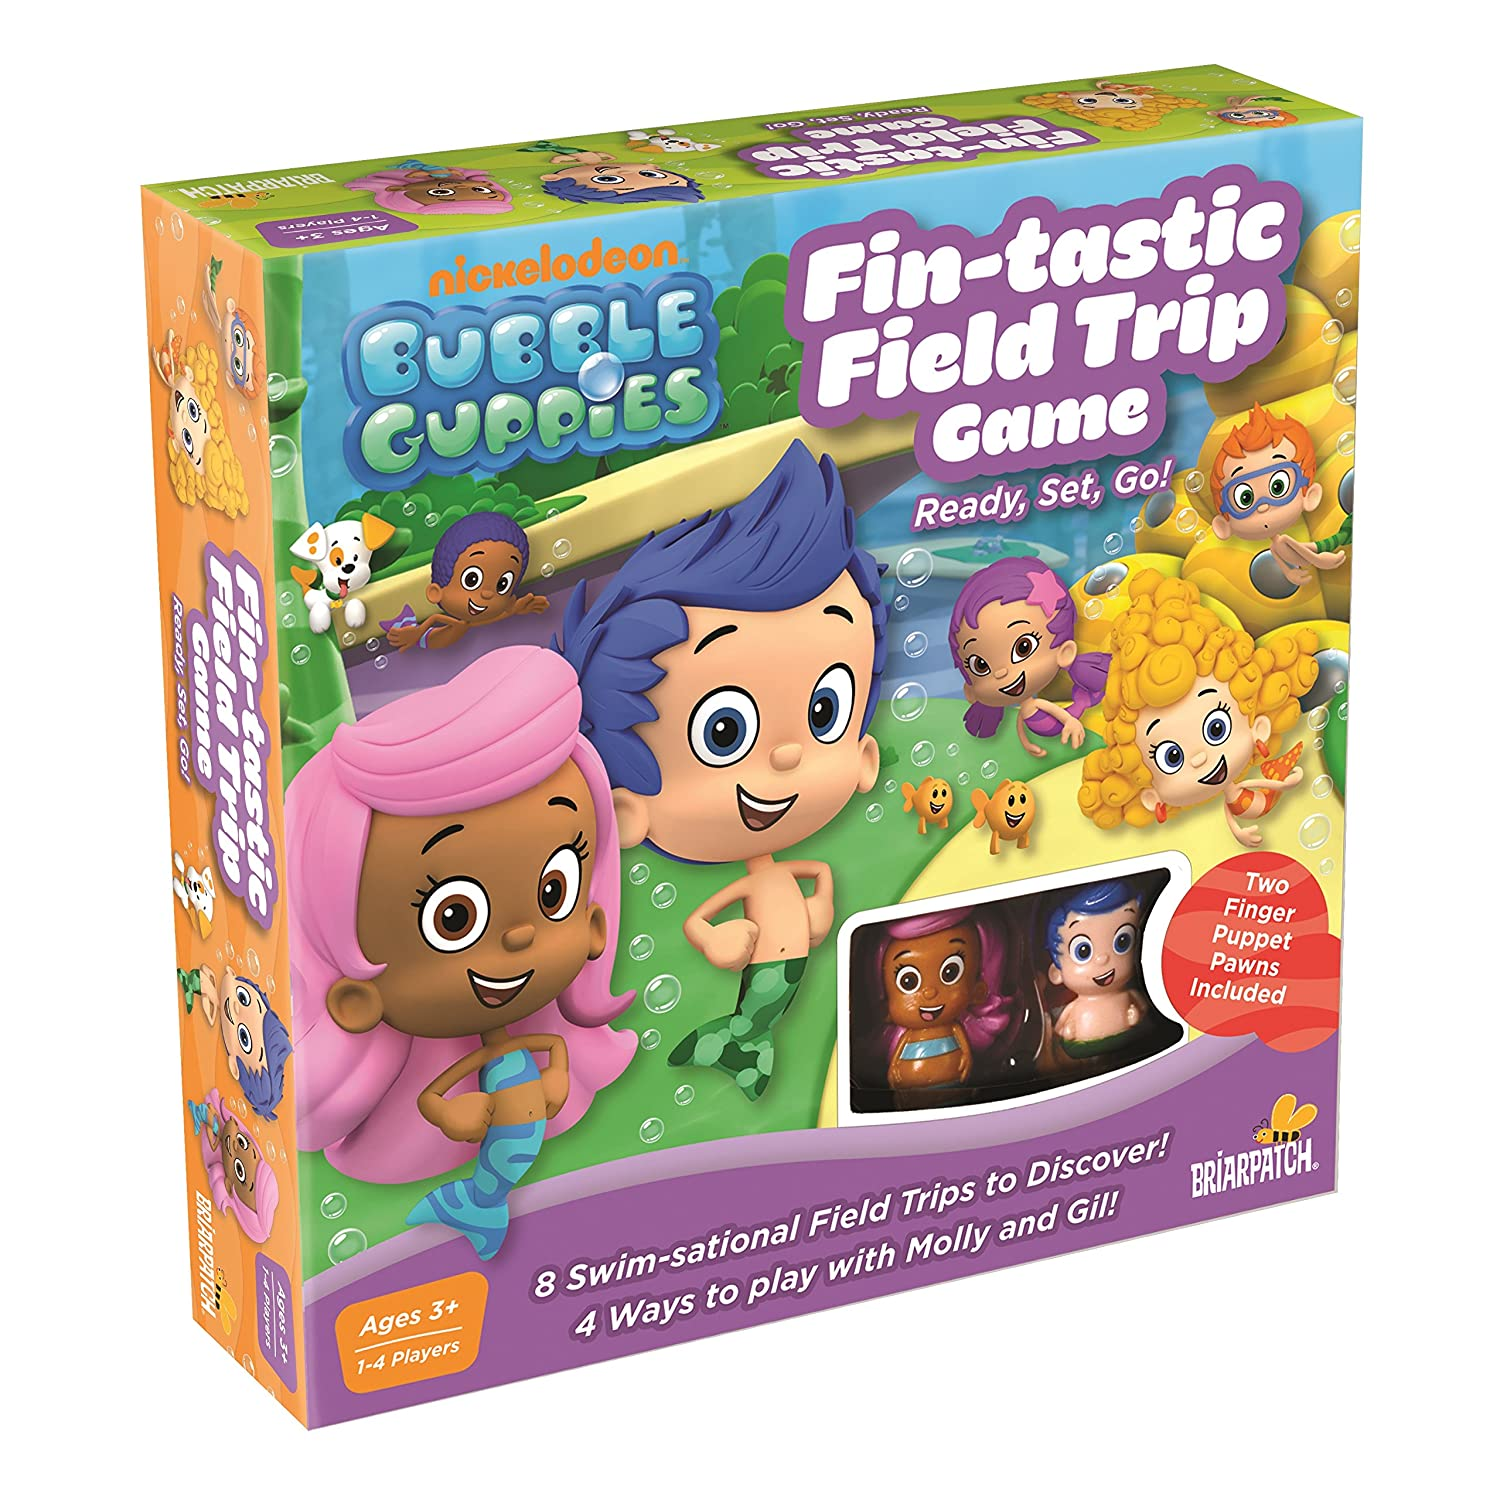 Bubble Guppies Game, 10.5 x 10.5 by University Games